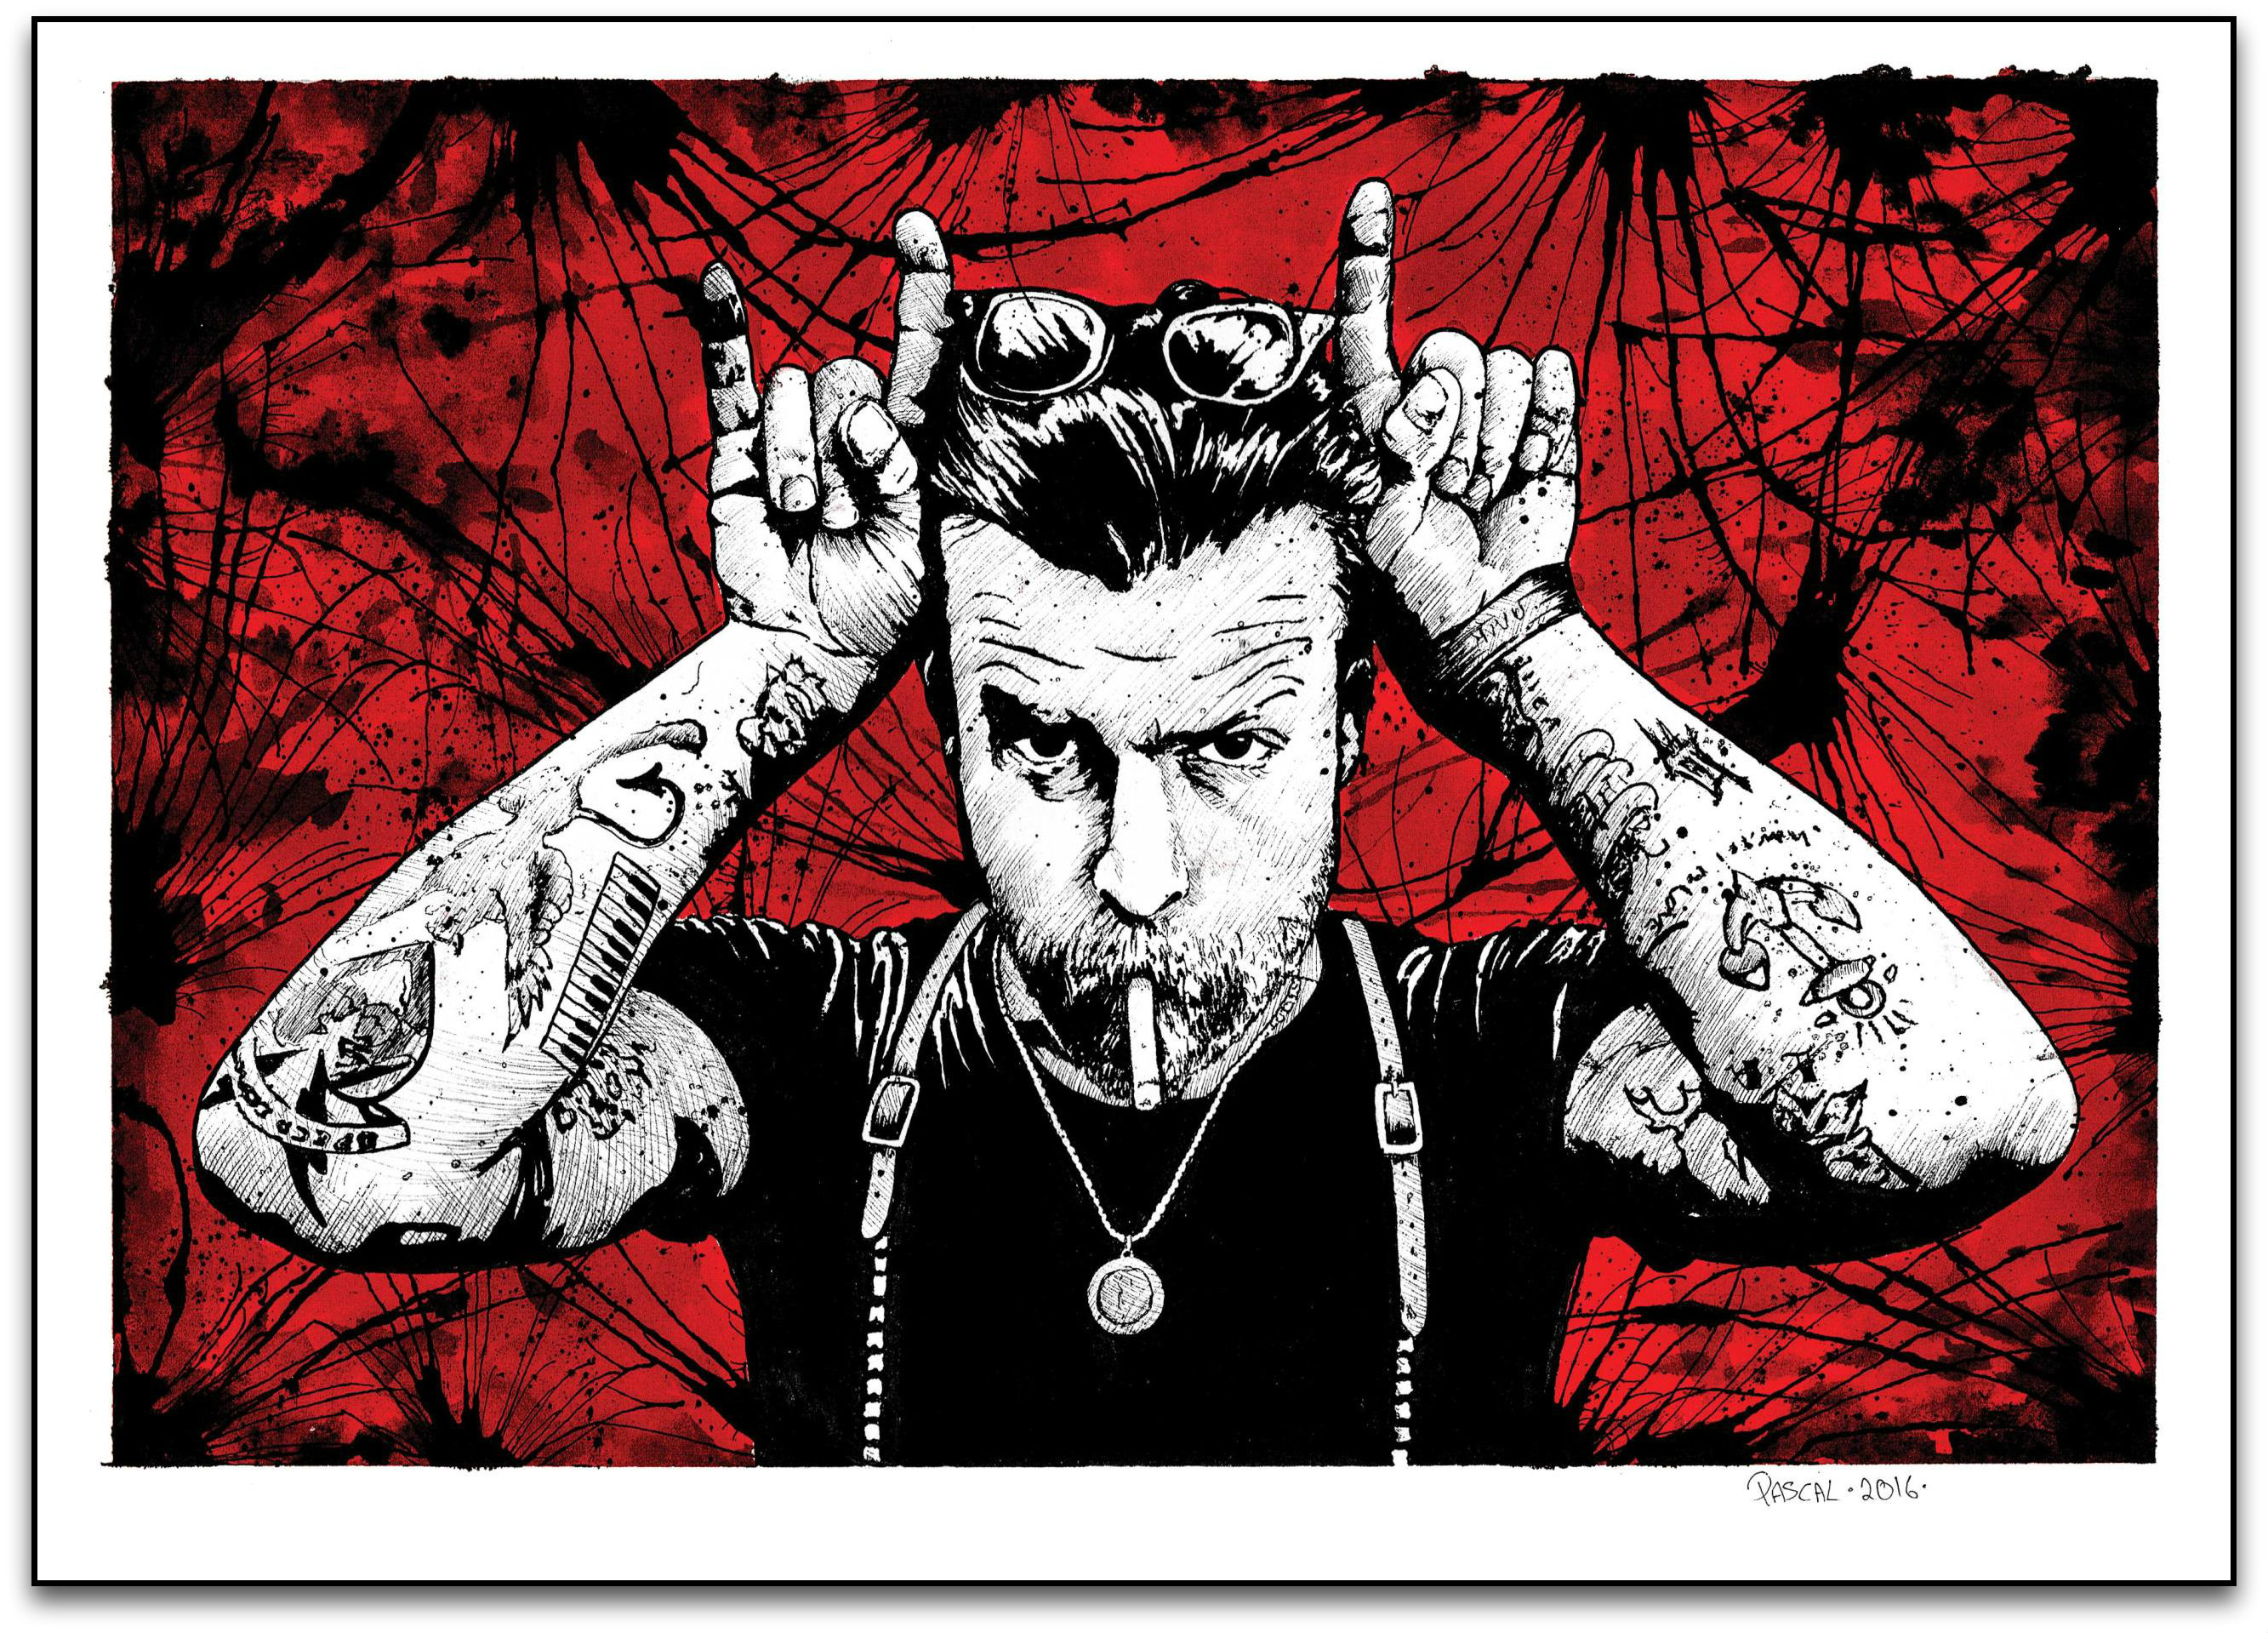 """Eagles of Death Metal. Jesse"" by Pascal D'Bras.  24"" x 18"" Giclee.  Ed of 250 S/N.  $55"